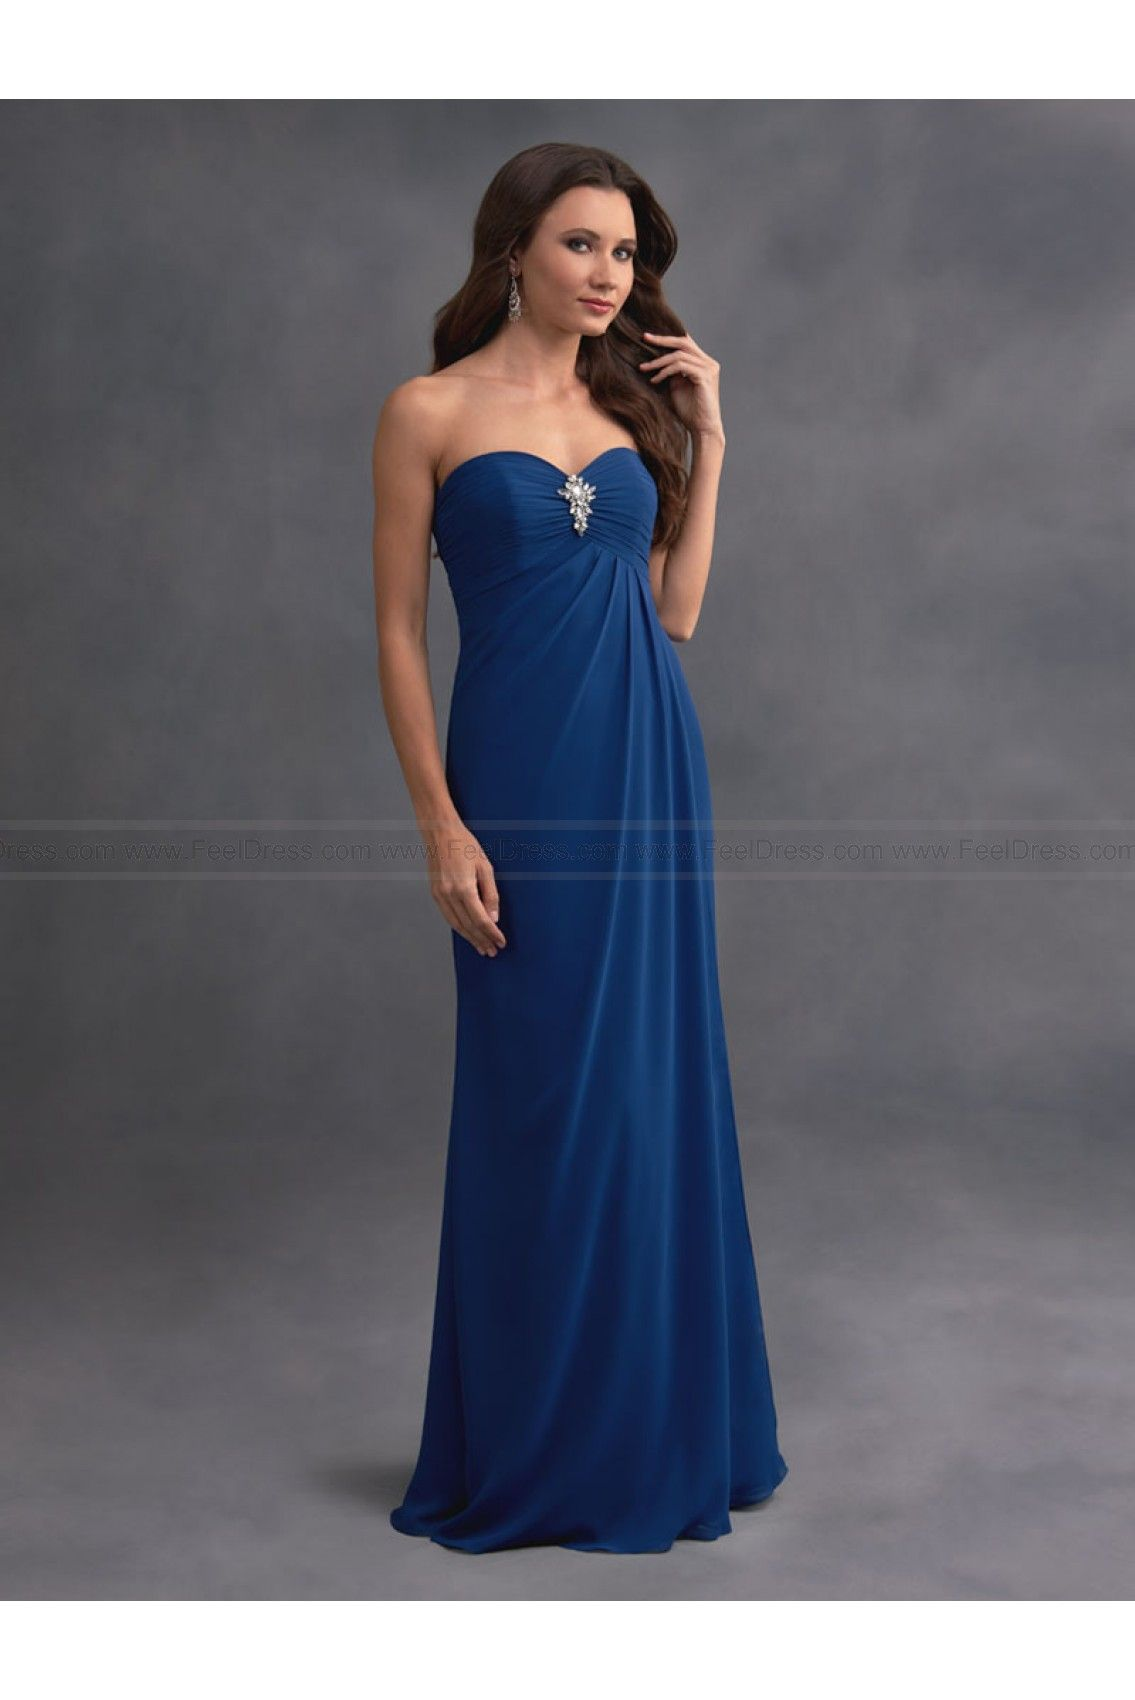 Alfred angelo bridesmaid dress style 7400l new alfred angelo alfred angelo bridesmaid dress style 7400l new ombrellifo Image collections